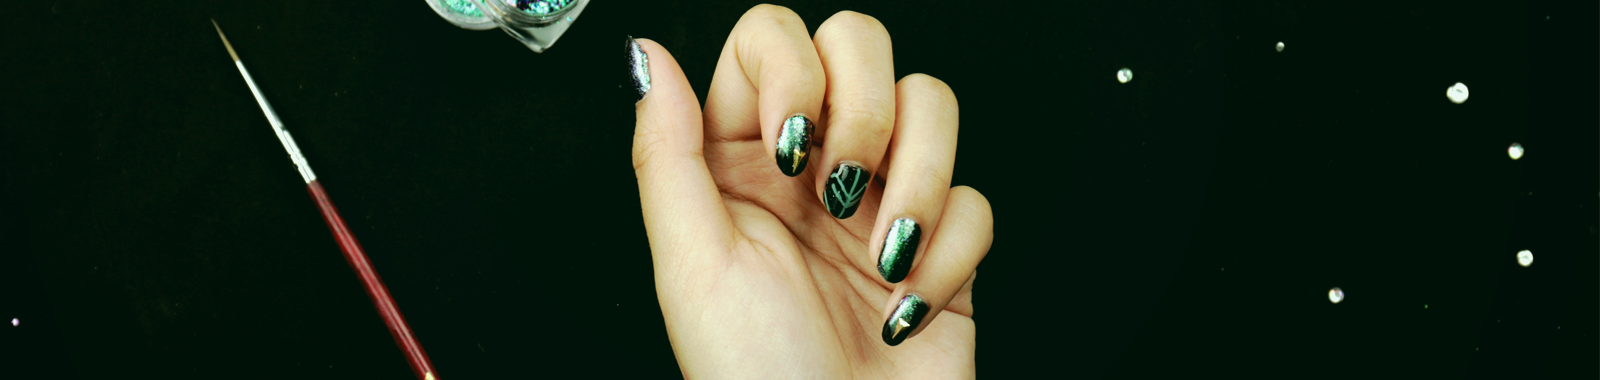 Be Hela Cool With This Hela Inspired Nail Art Look Disney Style